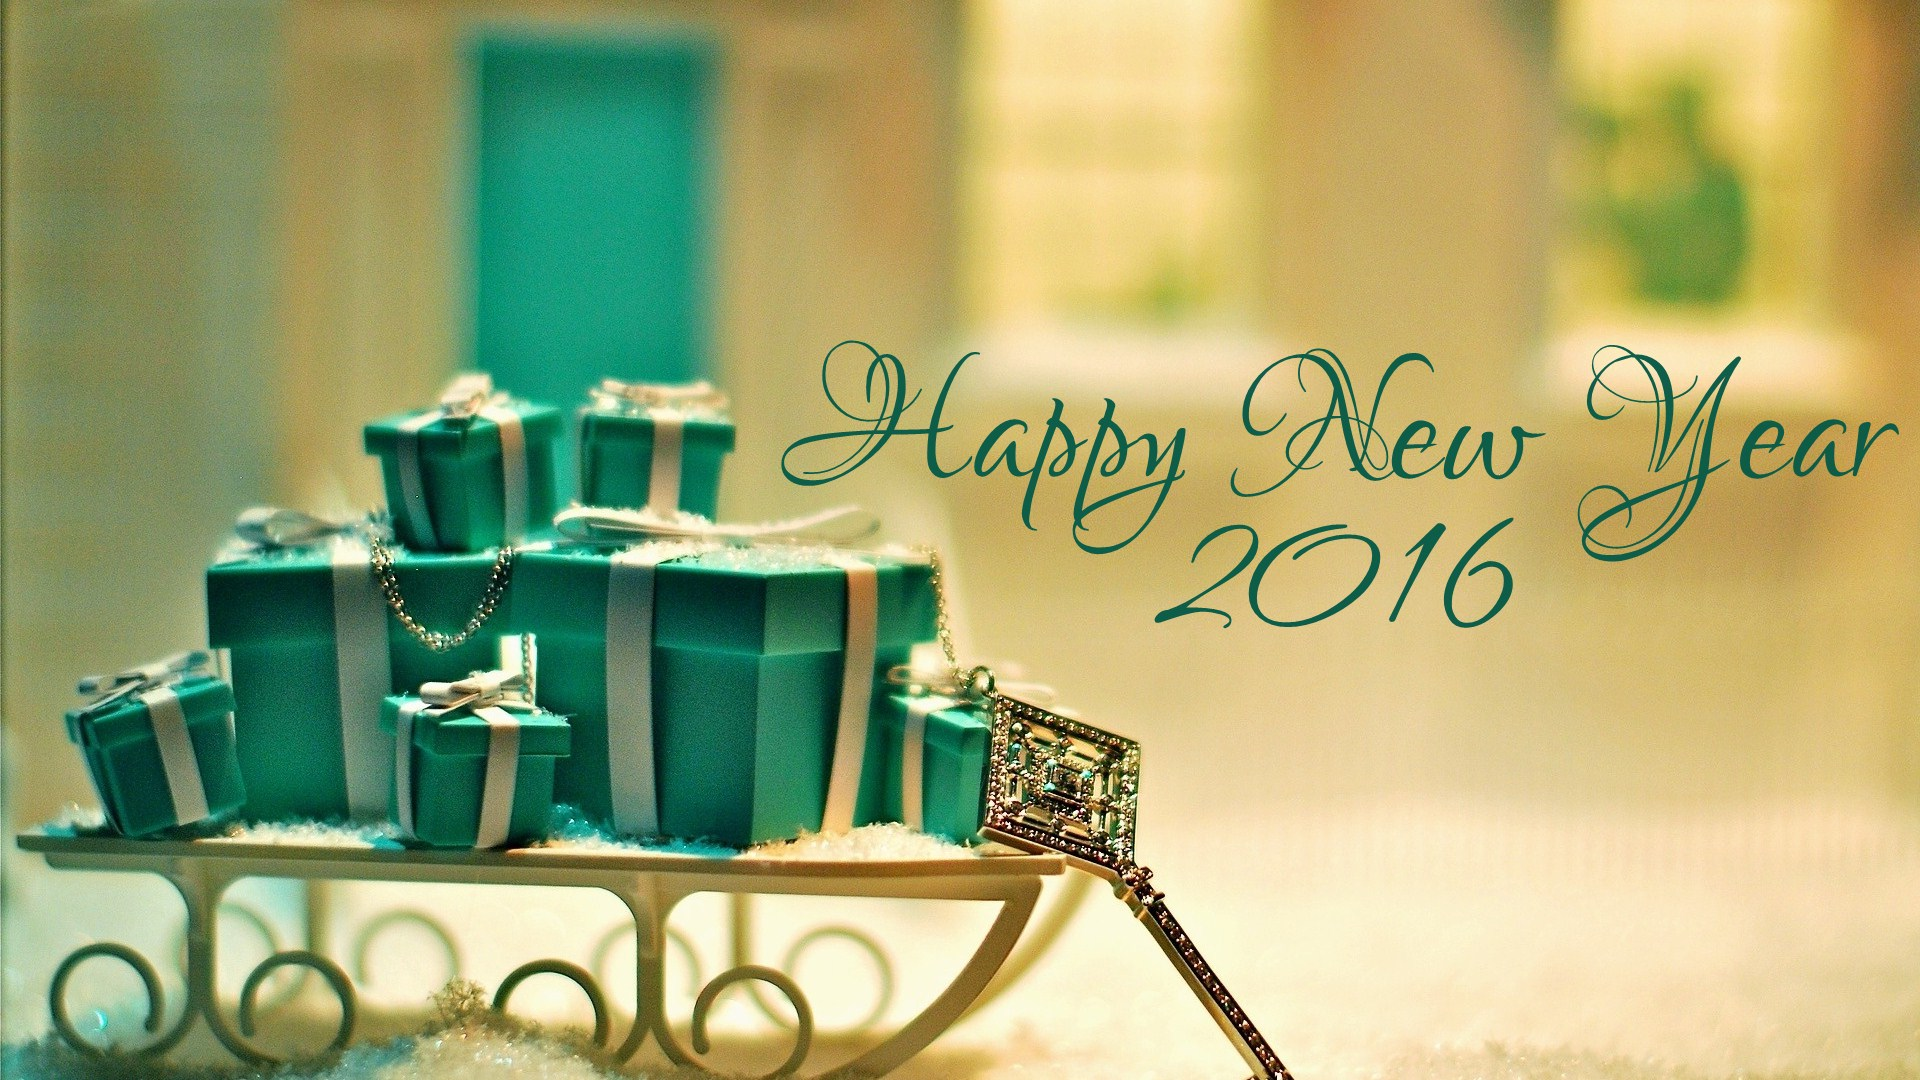 Happy New Year 2016 New 3D Wallpapers Download  2jpg 1920x1080